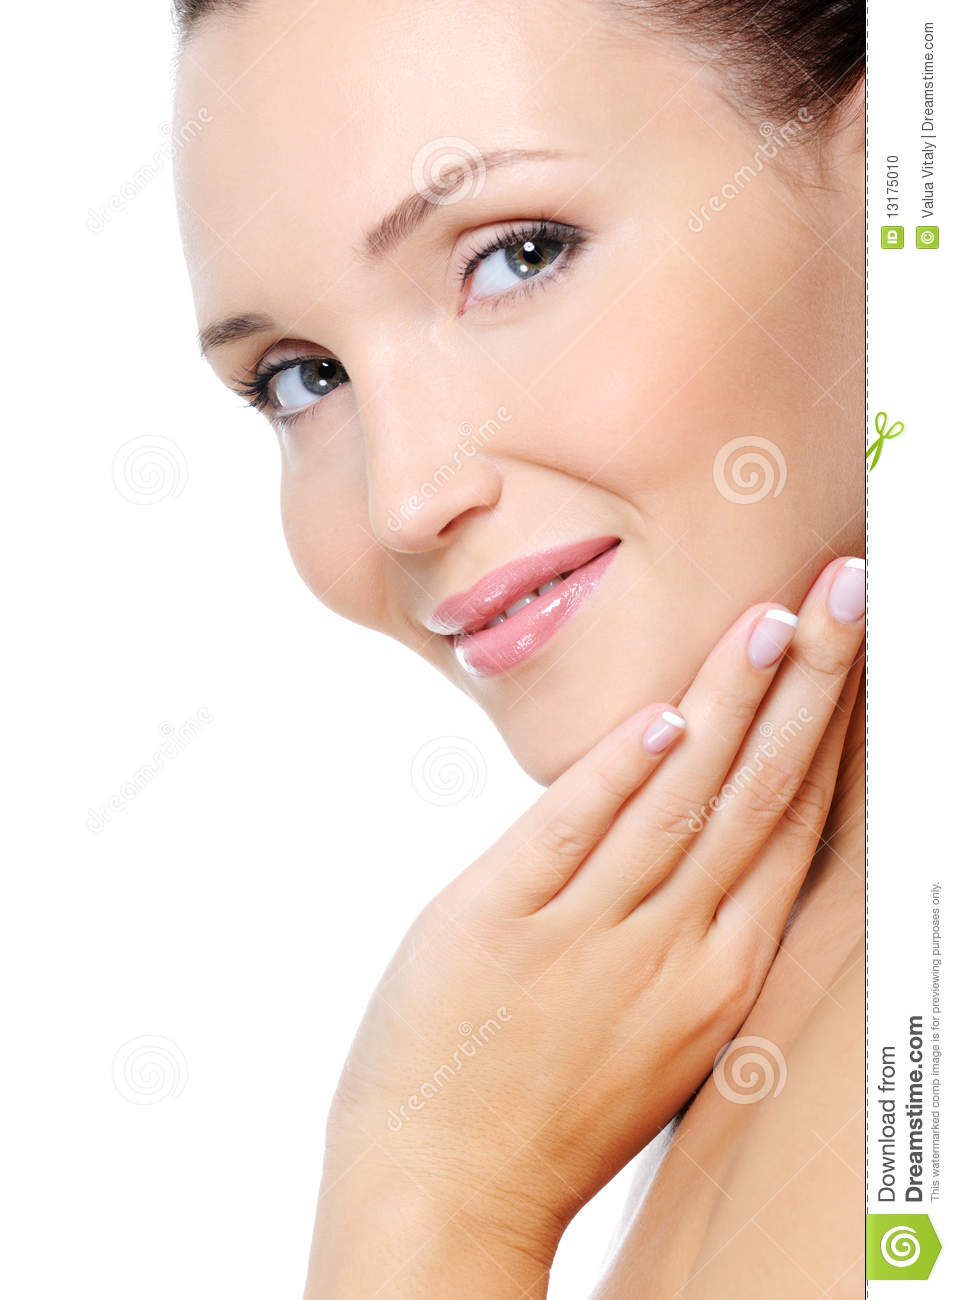 Young smiling woman with a clean health skin